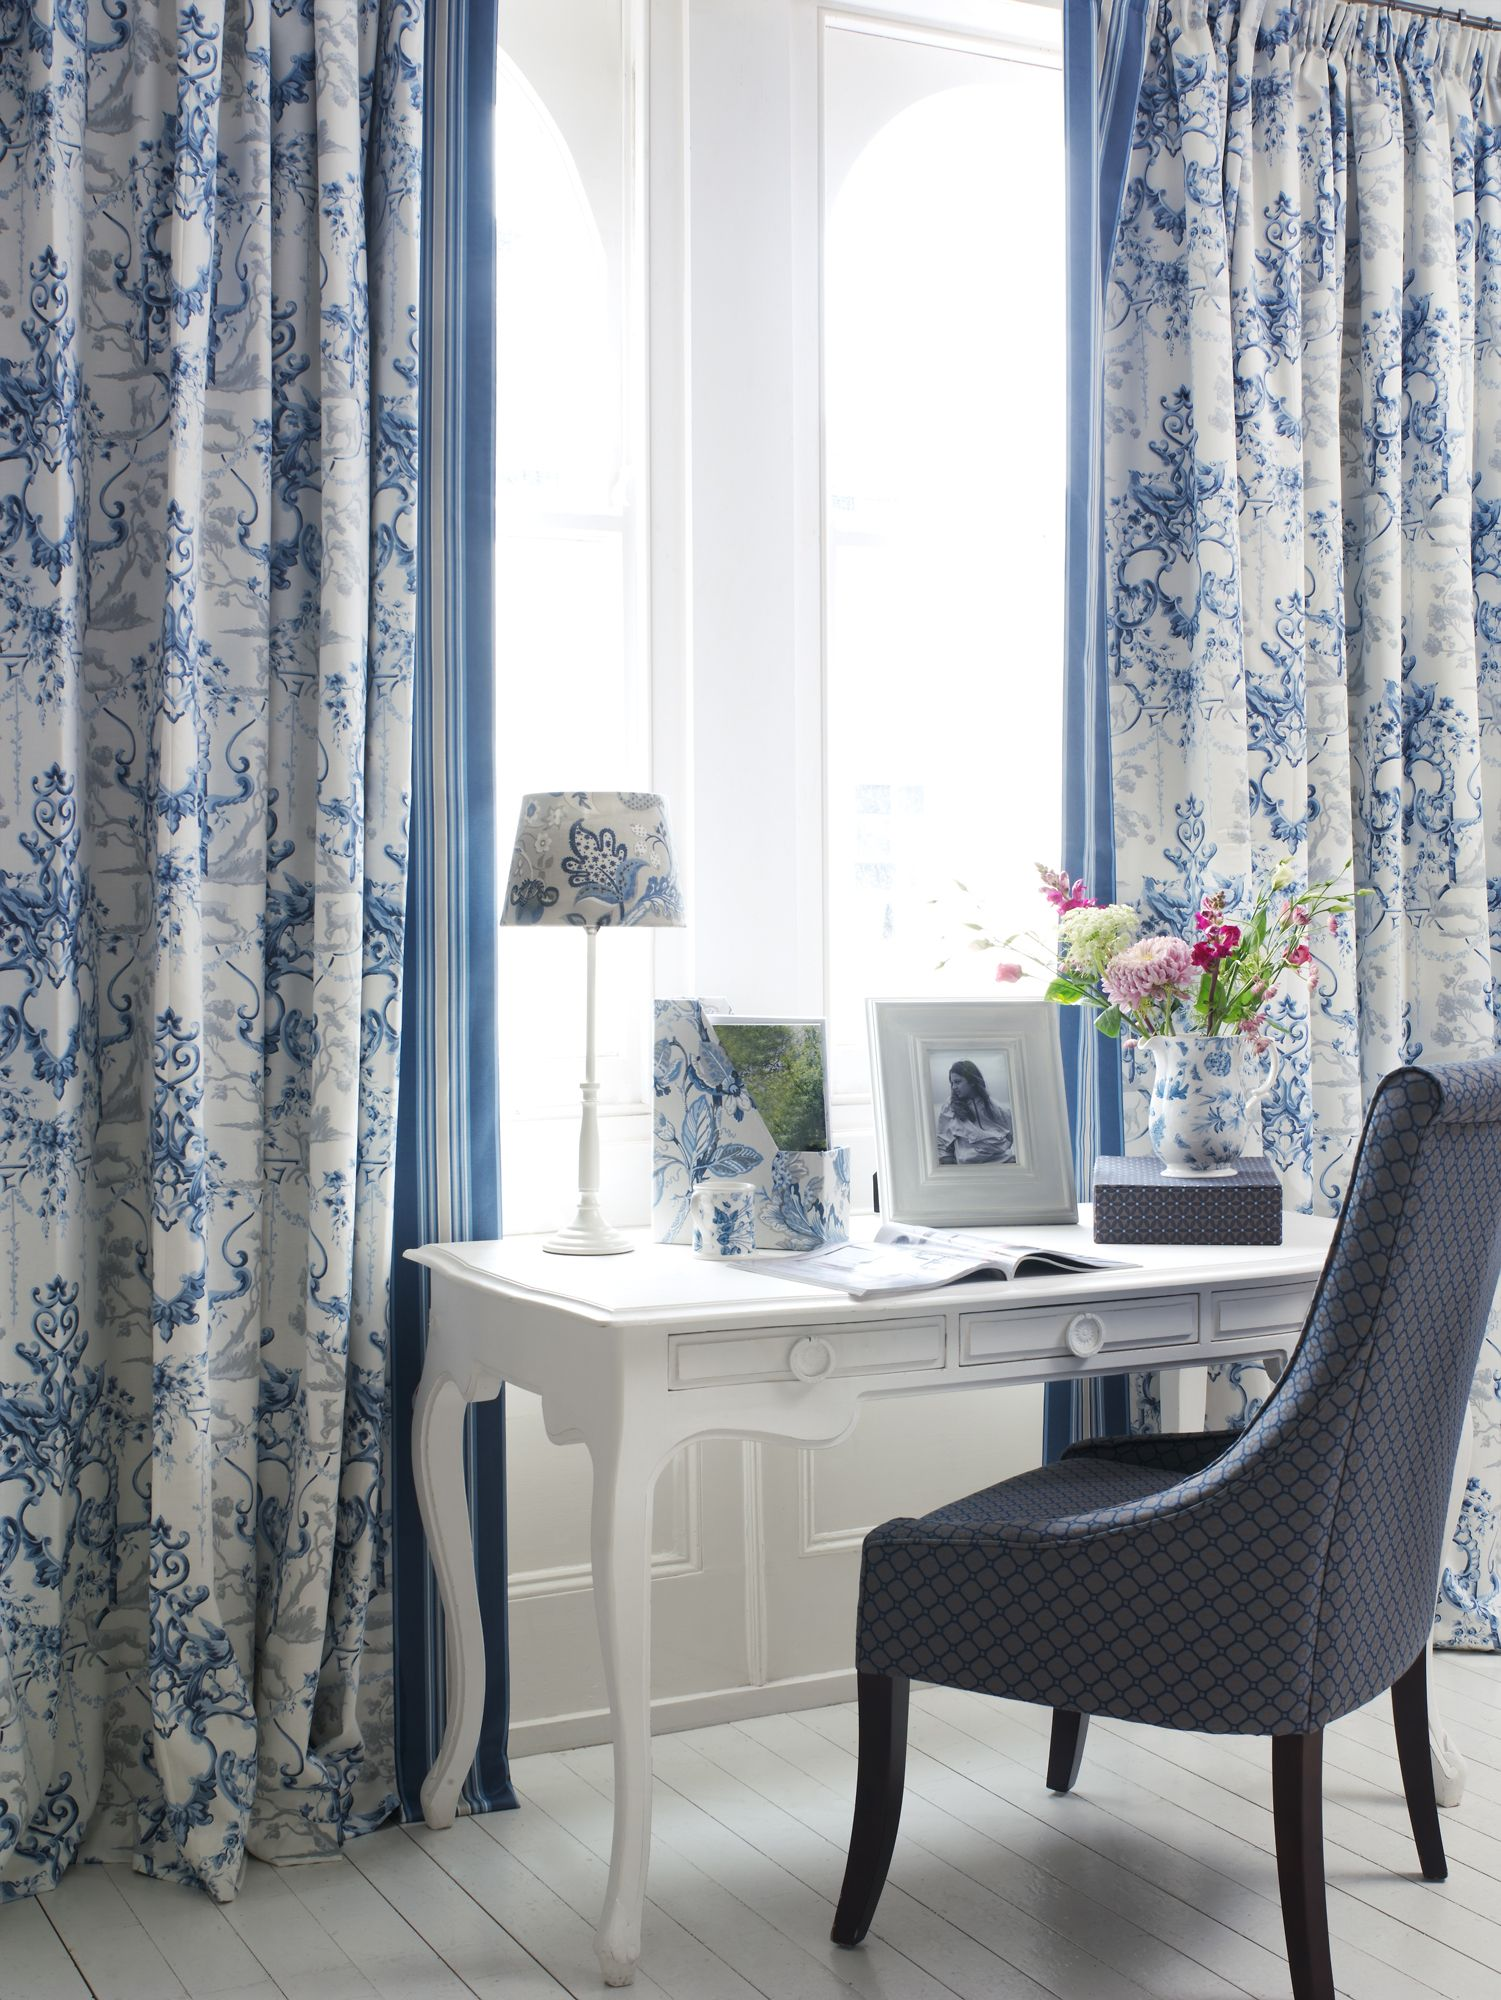 Window dressing ideas for arched windows  bellevue prints weaves collections by blendworth interiordesign